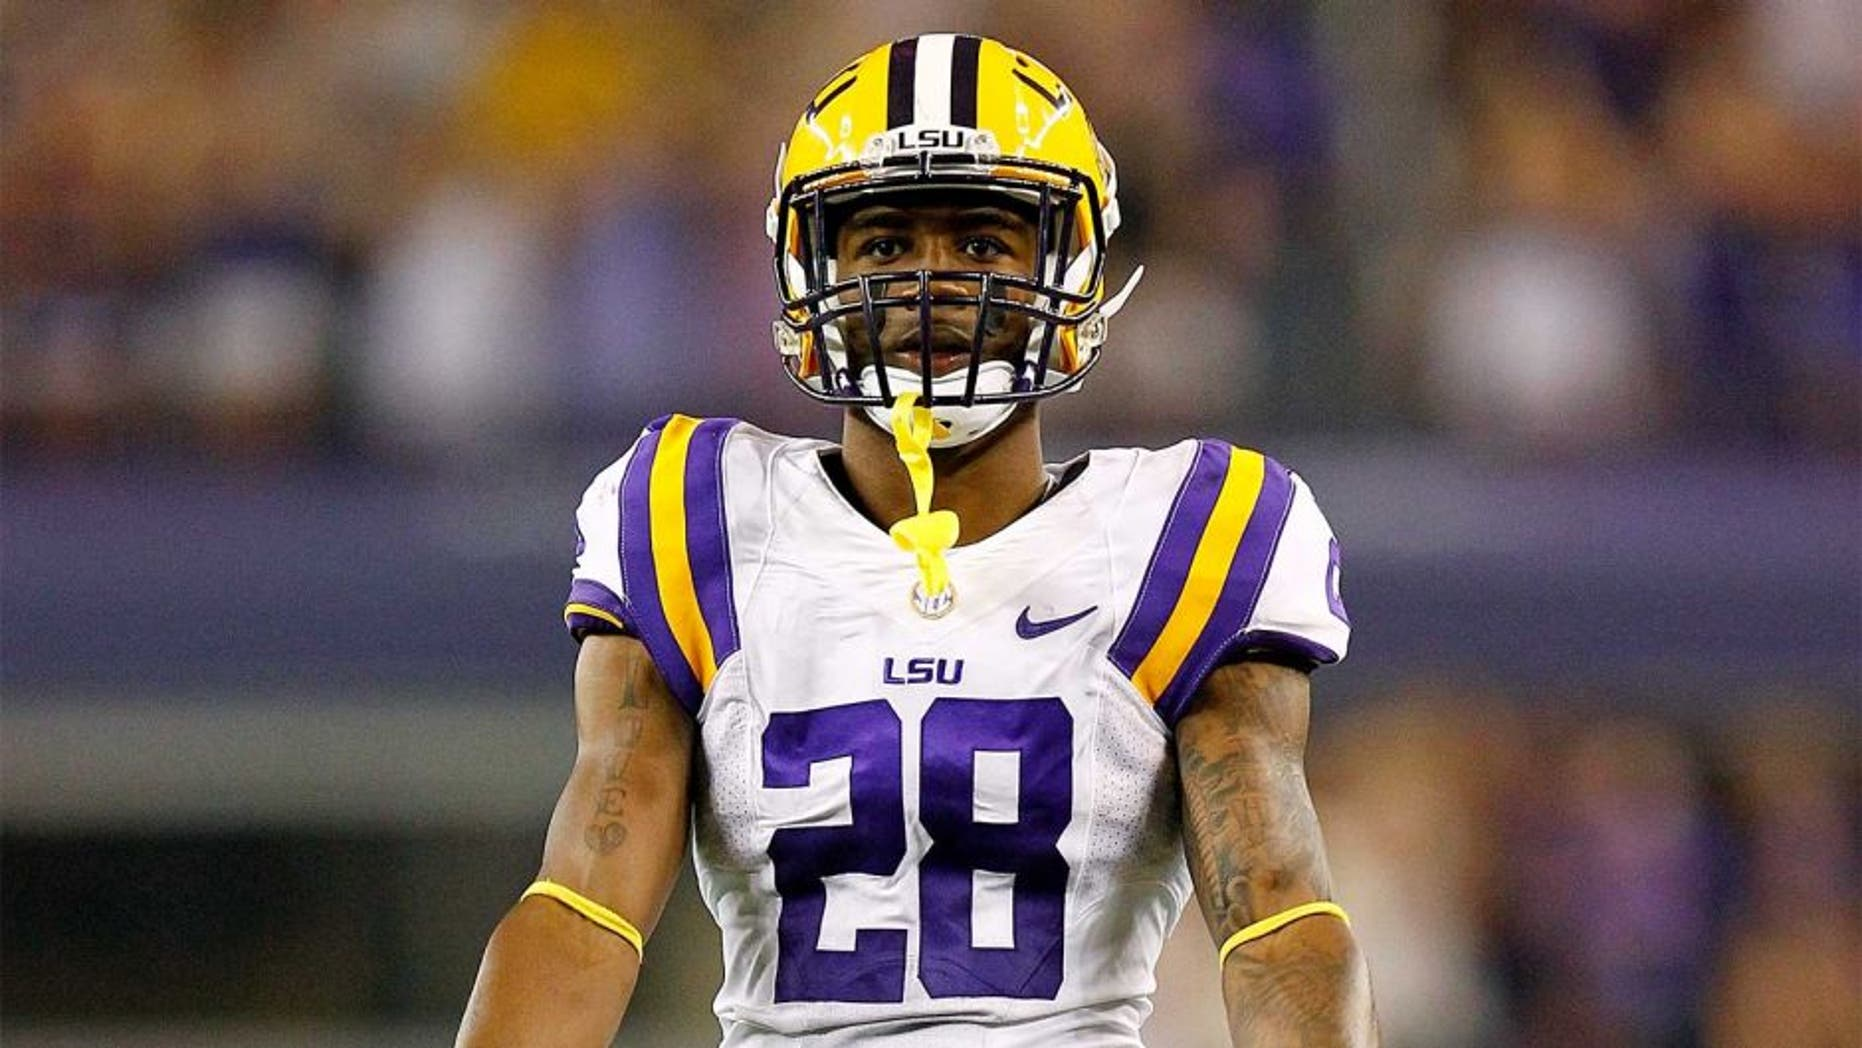 ARLINGTON, TX - AUGUST 31: Jalen Mills #28 of the LSU Tigers looks on during a game against the TCU Horned Frogs at Cowboys Stadium on August 31, 2013 in Arlington, Texas. (Photo by Sarah Glenn/Getty Images)